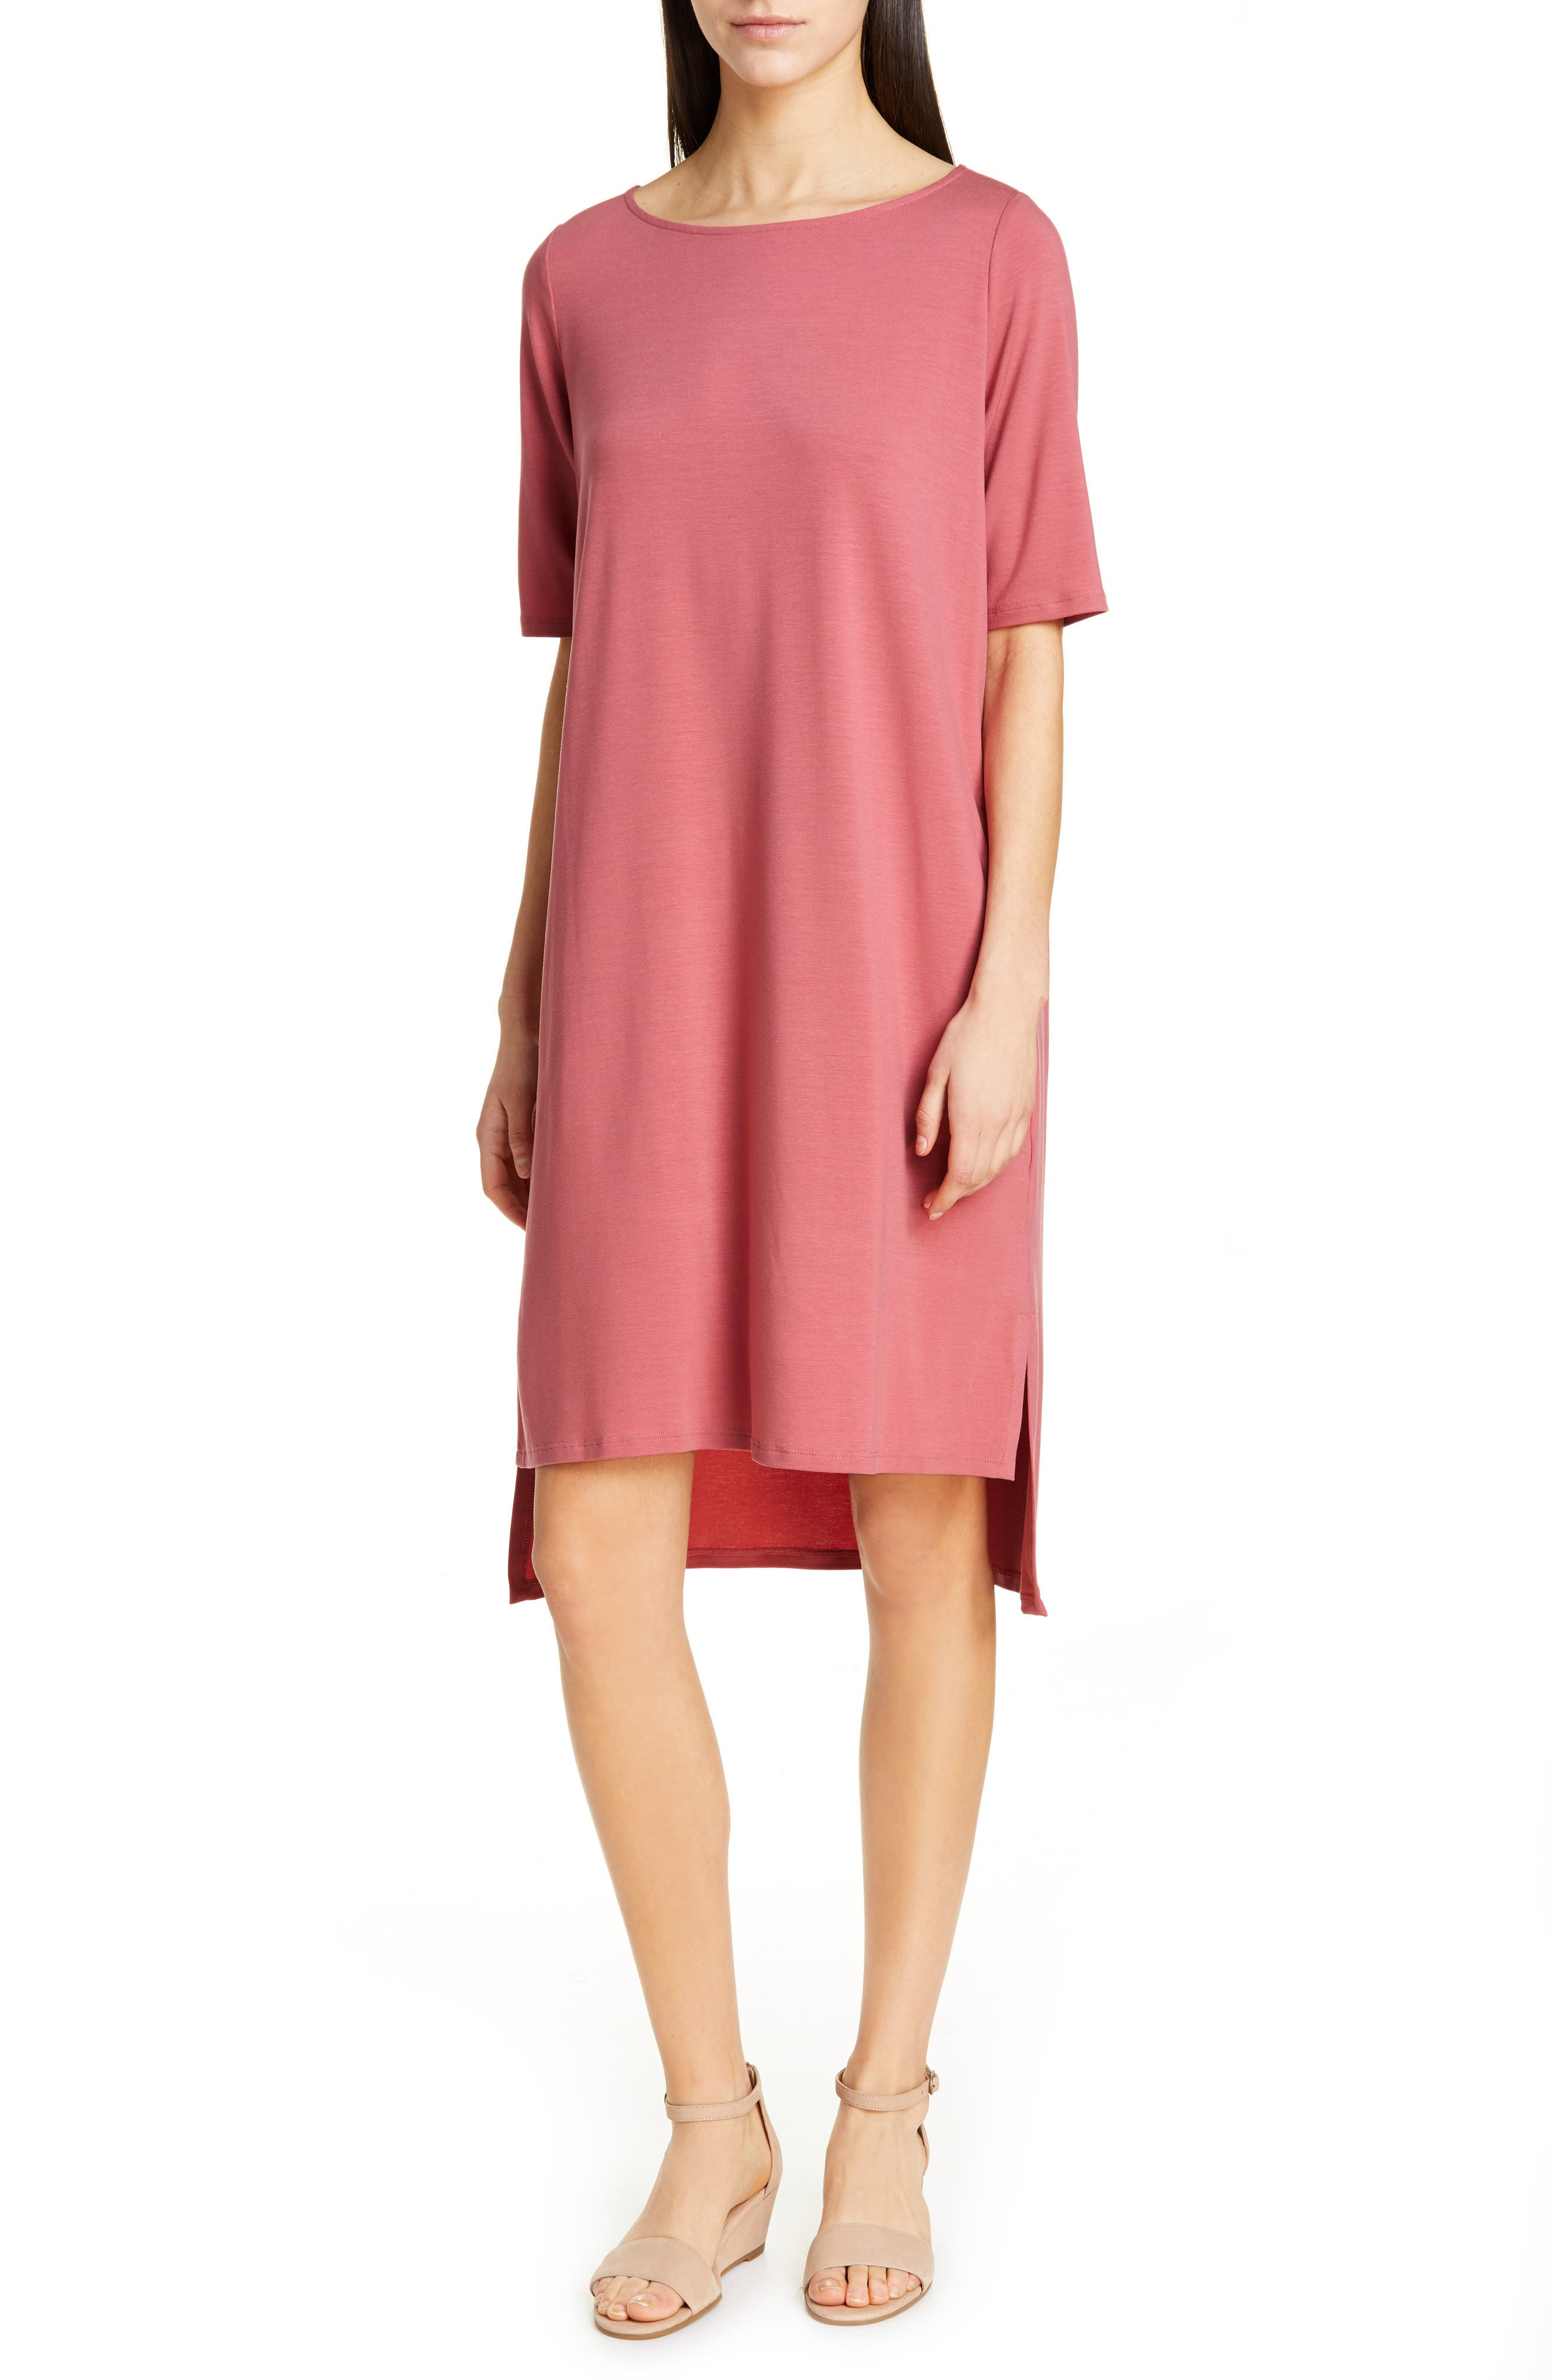 Petite Eileen Fisher High/low Shift Dress, Pink